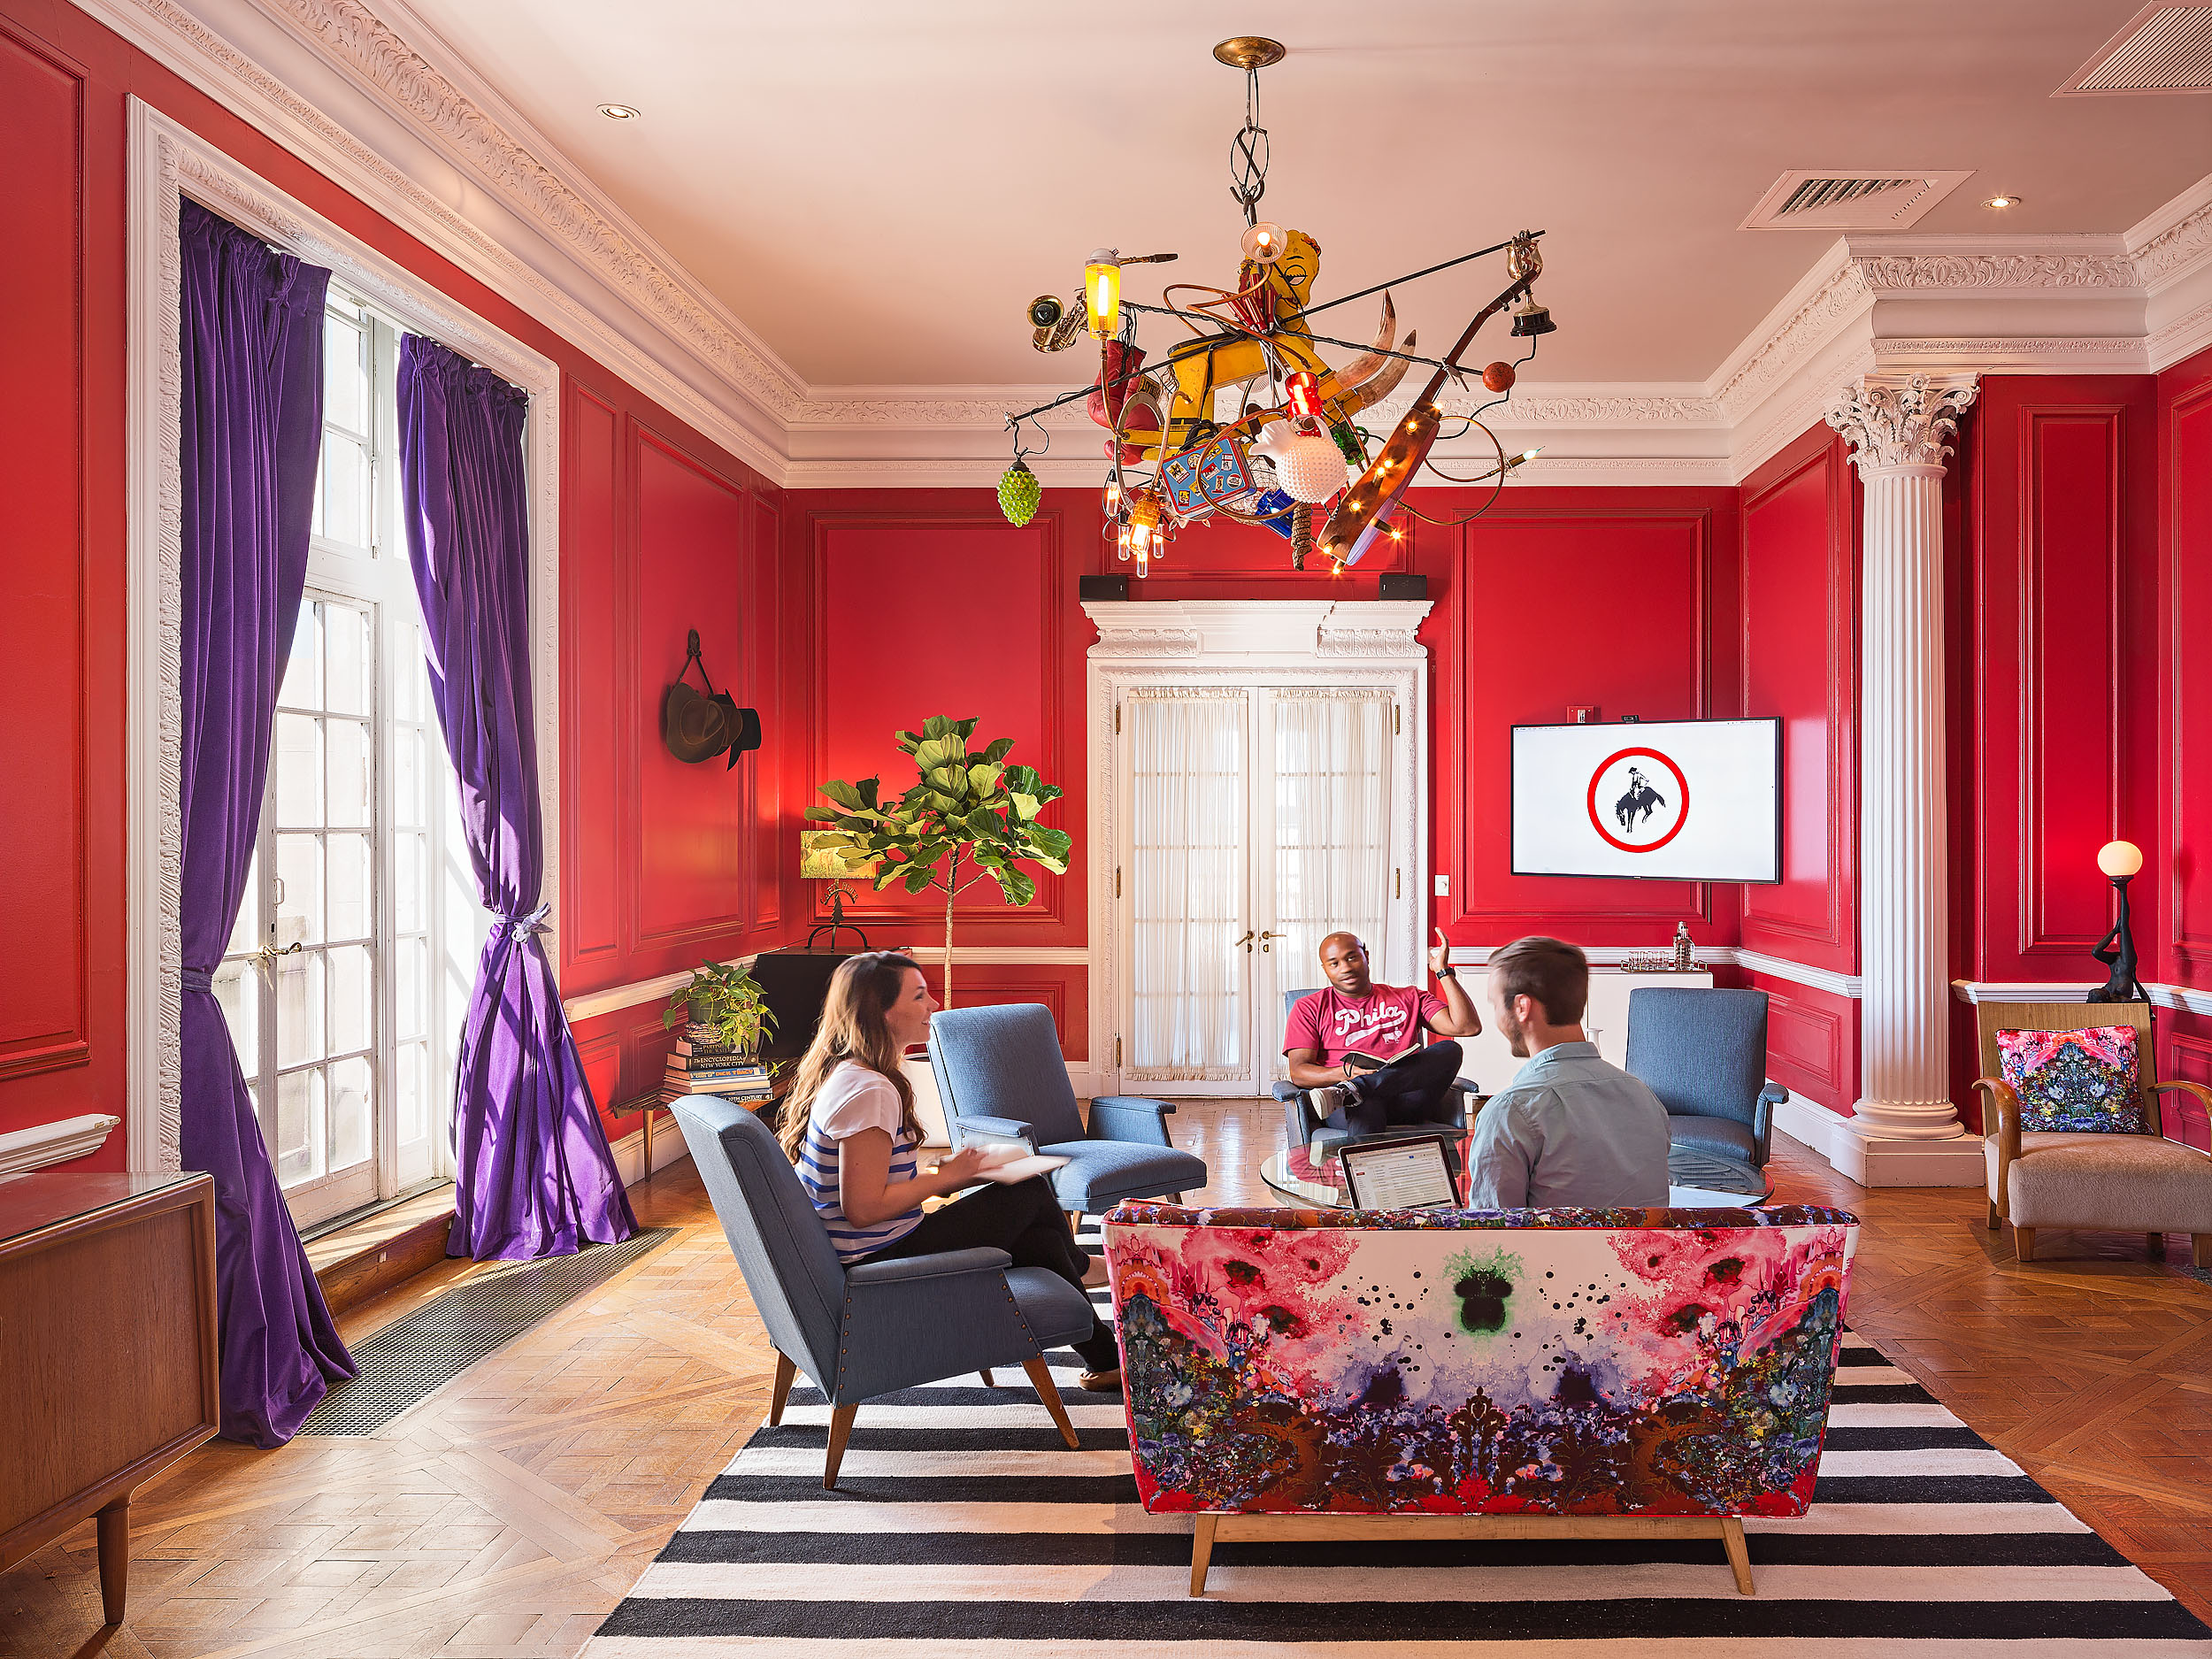 Philly's Coolest Offices - Red Tettemer O'Connell + Partners